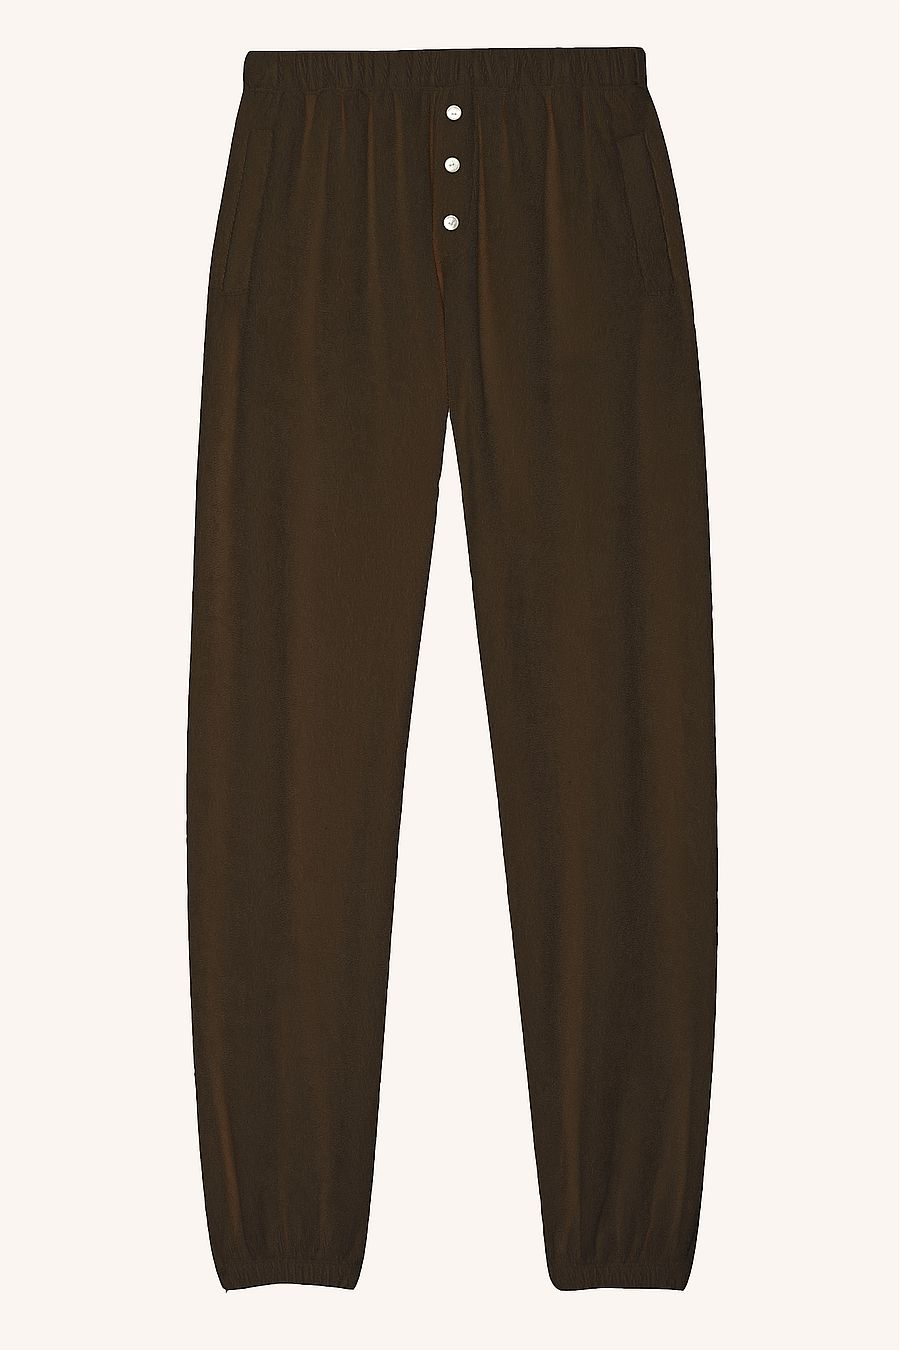 DONNI. Terry Henley Sweatpant - Chocolate